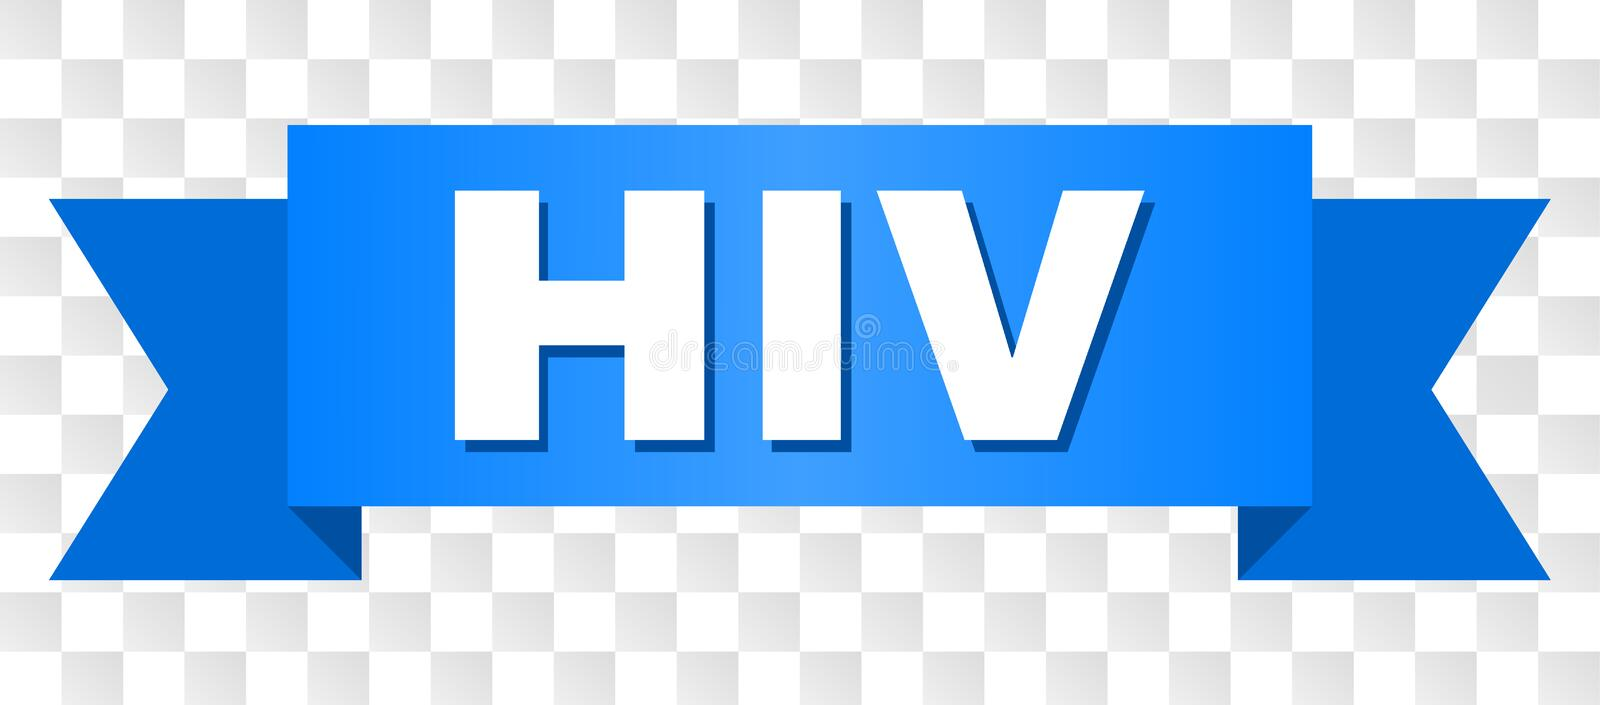 Blue Stripe with HIV Text stock illustration